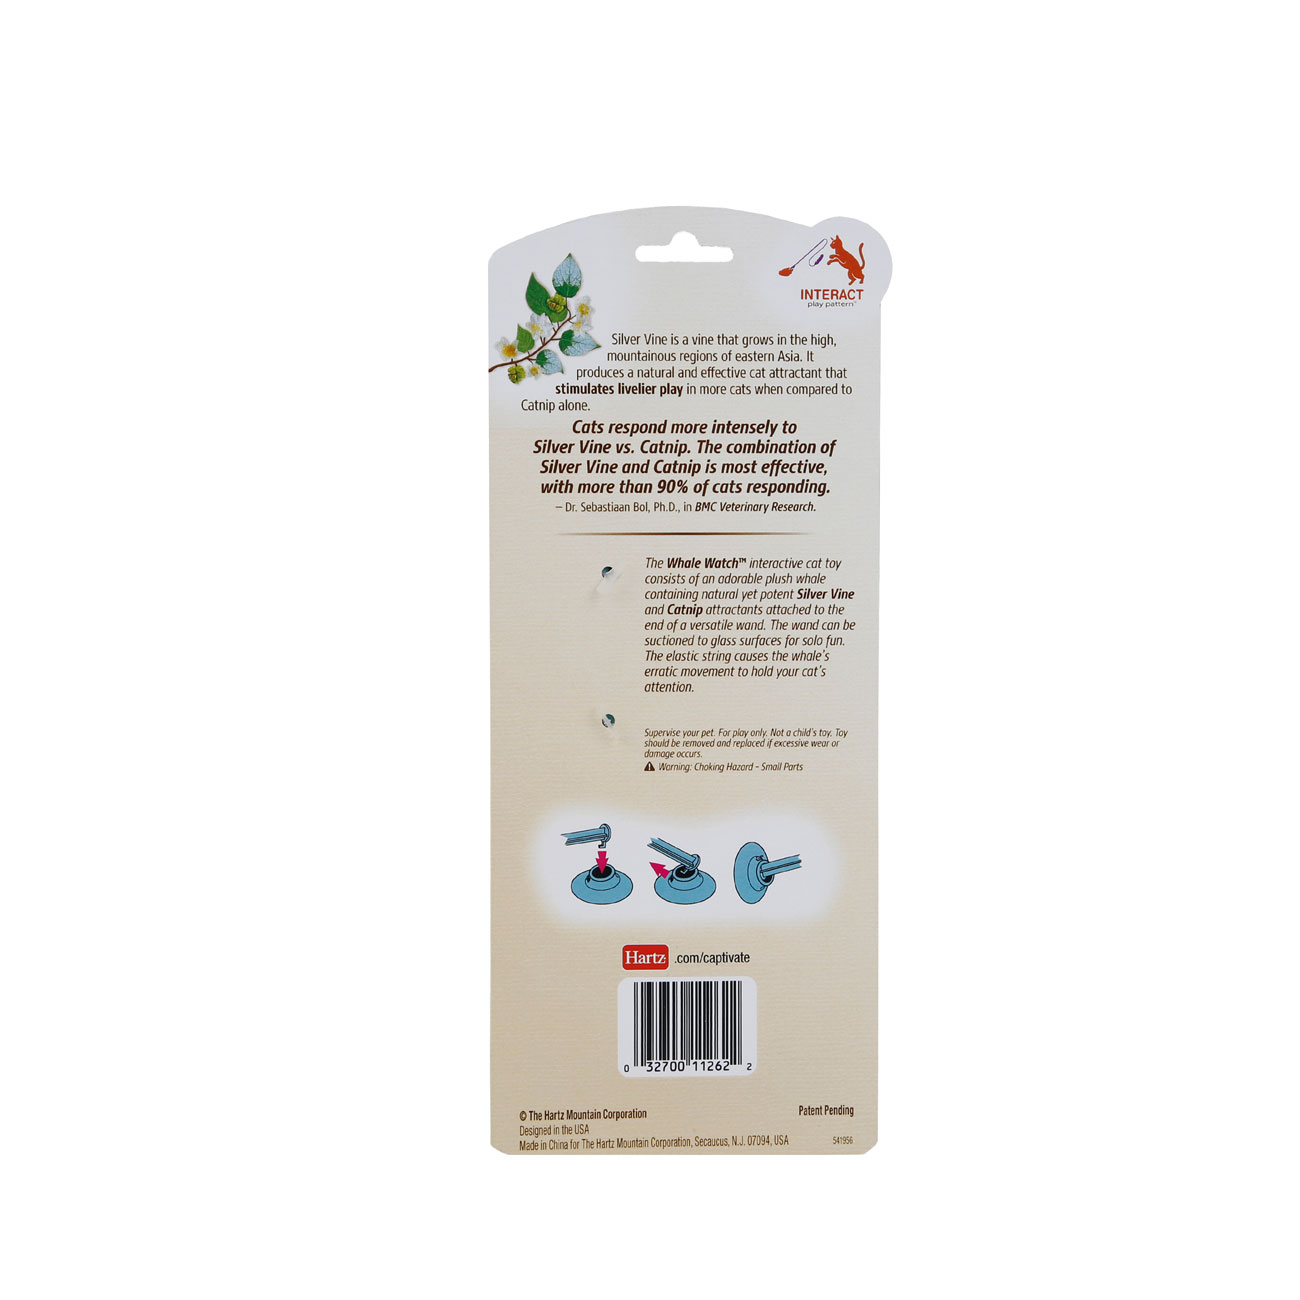 Hartz captivate whale watch high quality cat toy with silver vone and catnip. Hartz SKU#3270011262